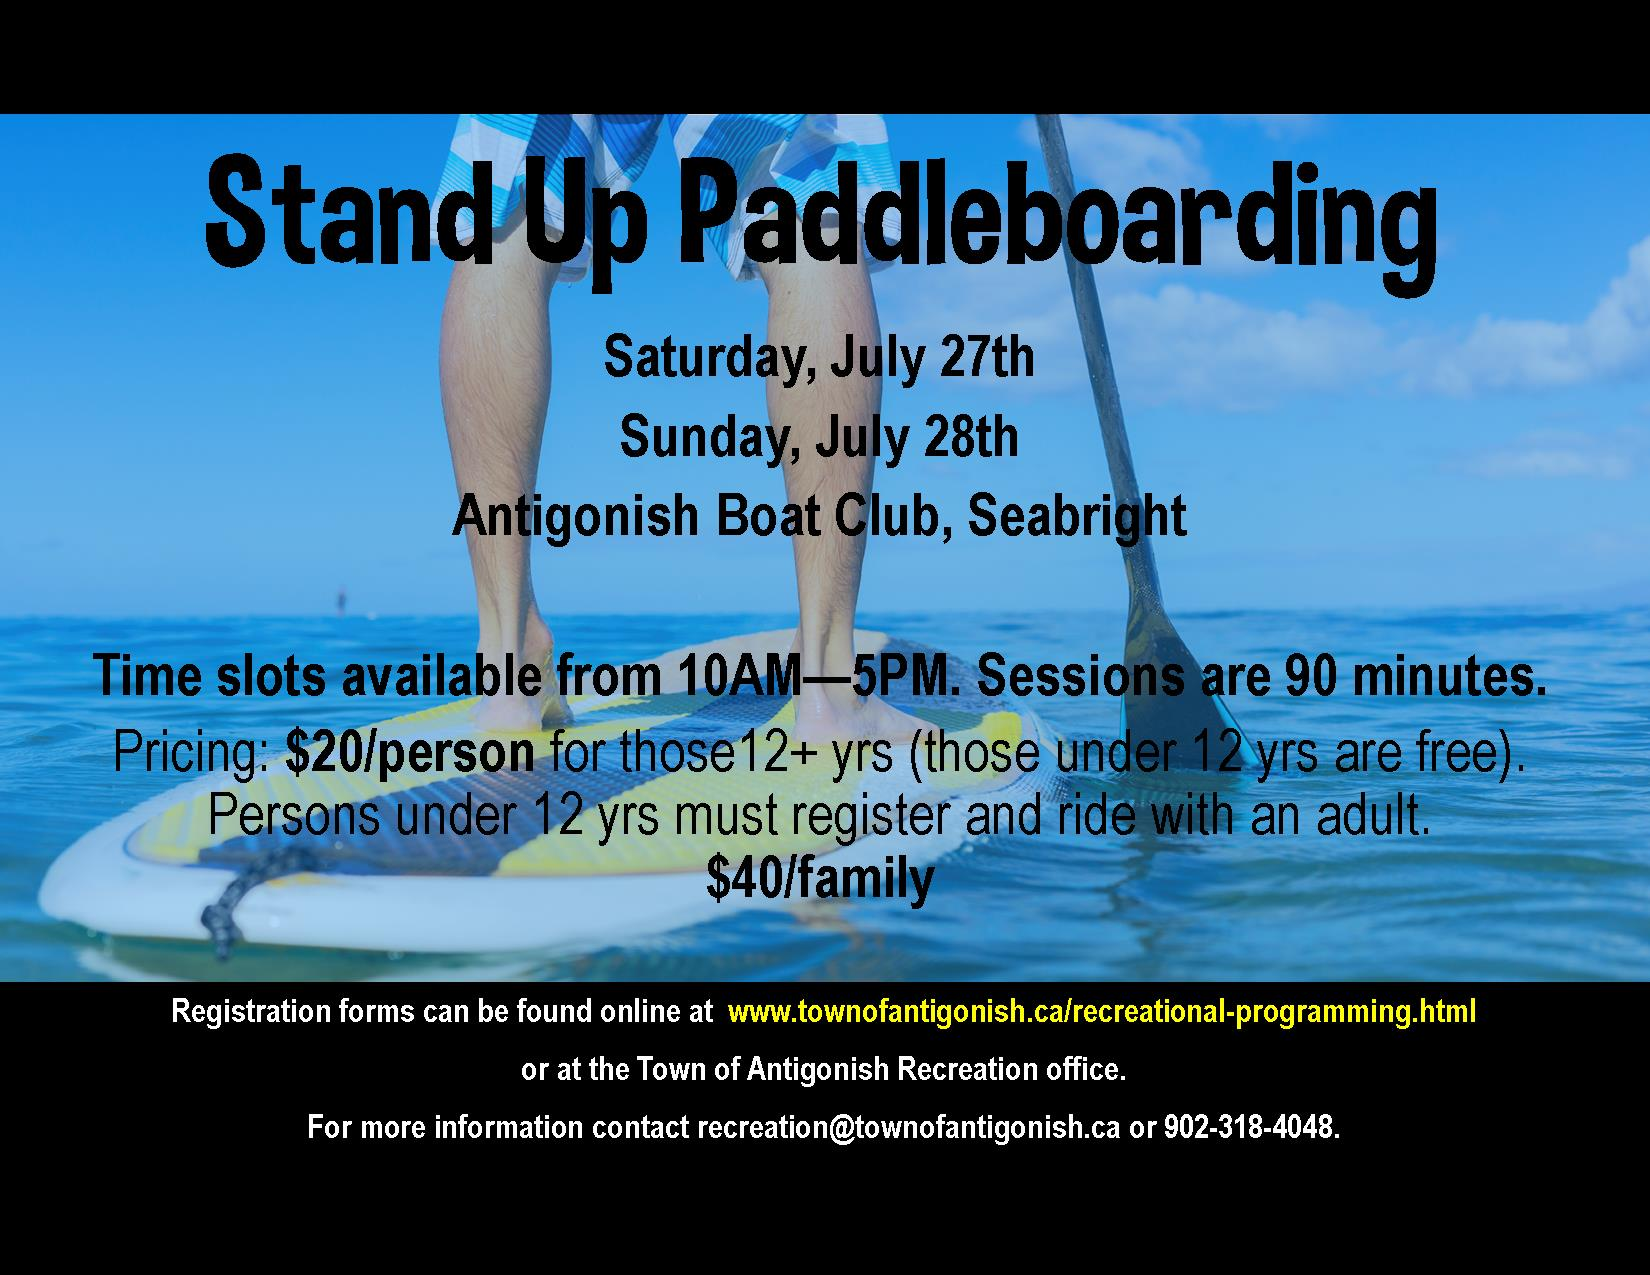 Stand Up Paddle Boarding Poster 2019.jpg